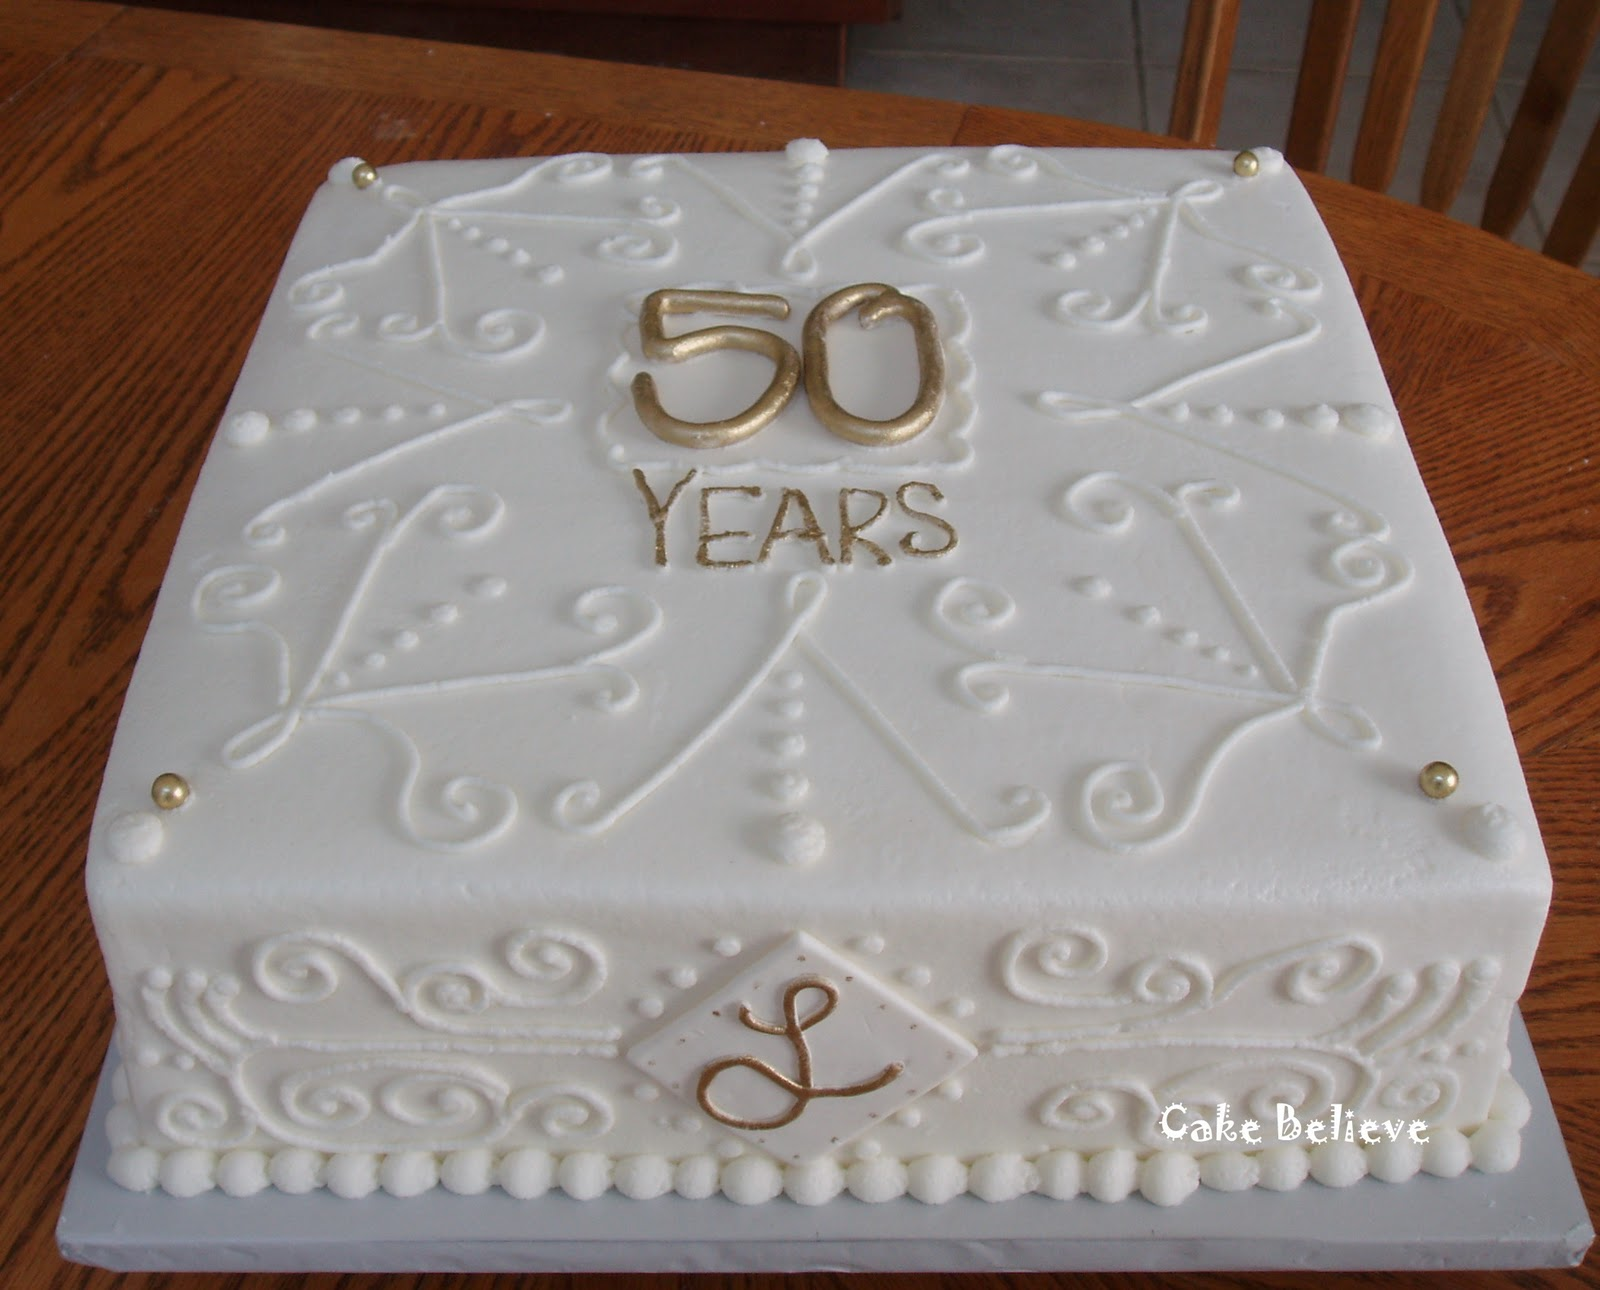 50th Wedding Anniversary Cakes - Tyler Living